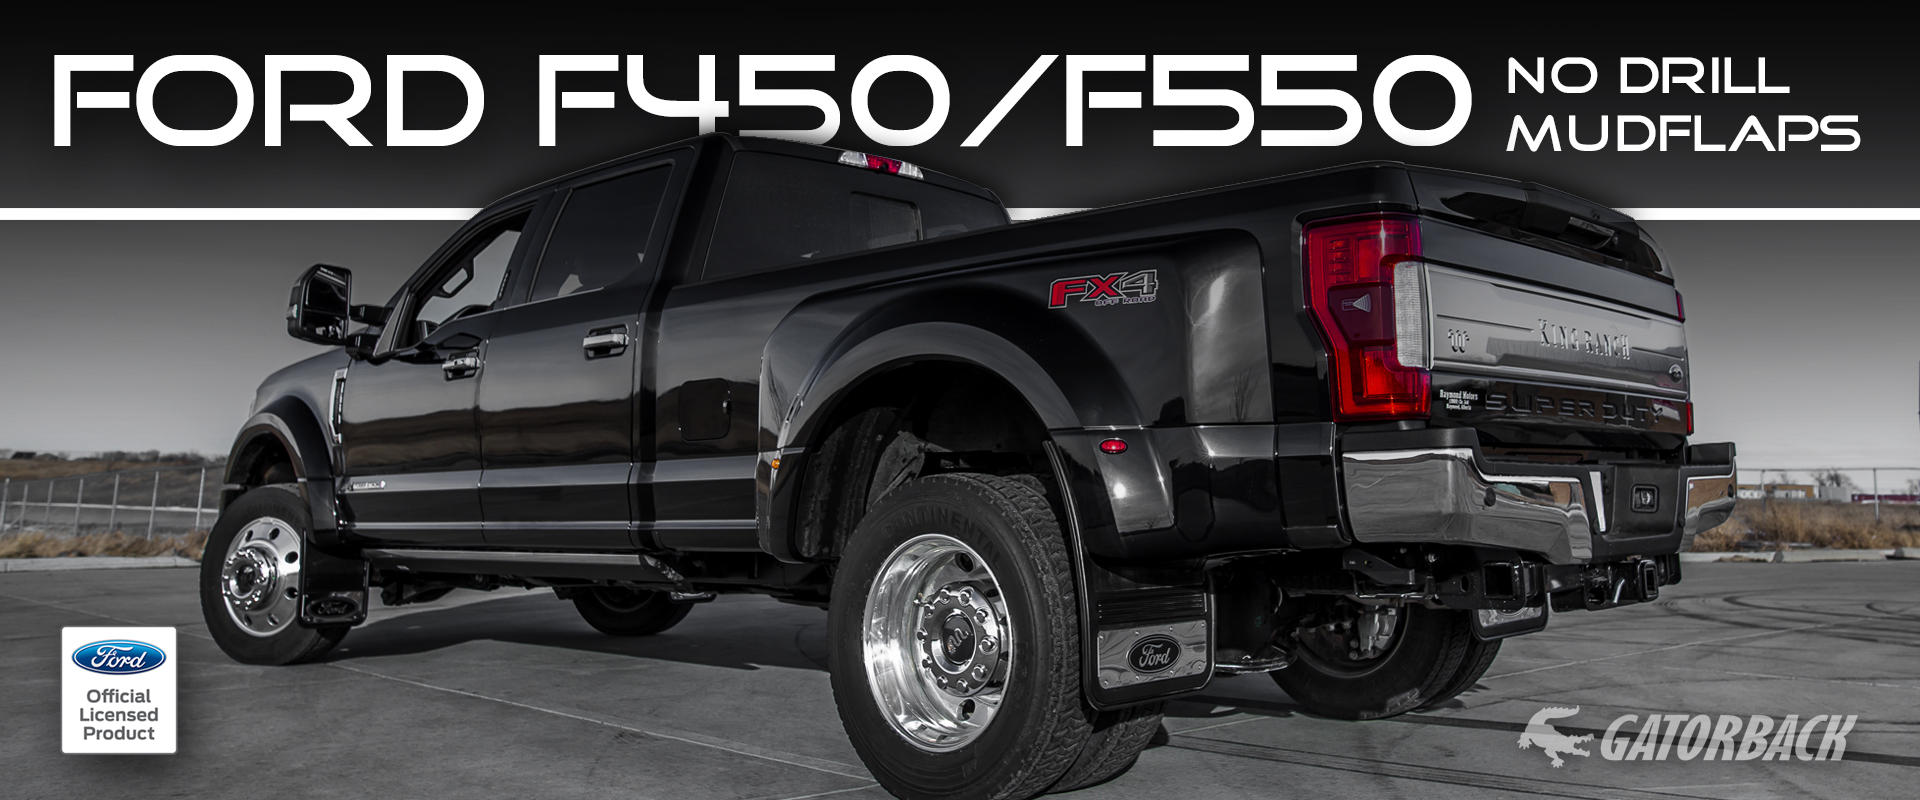 2018 Ford F-450 Super Duty Gatorback GCR Mud Flaps